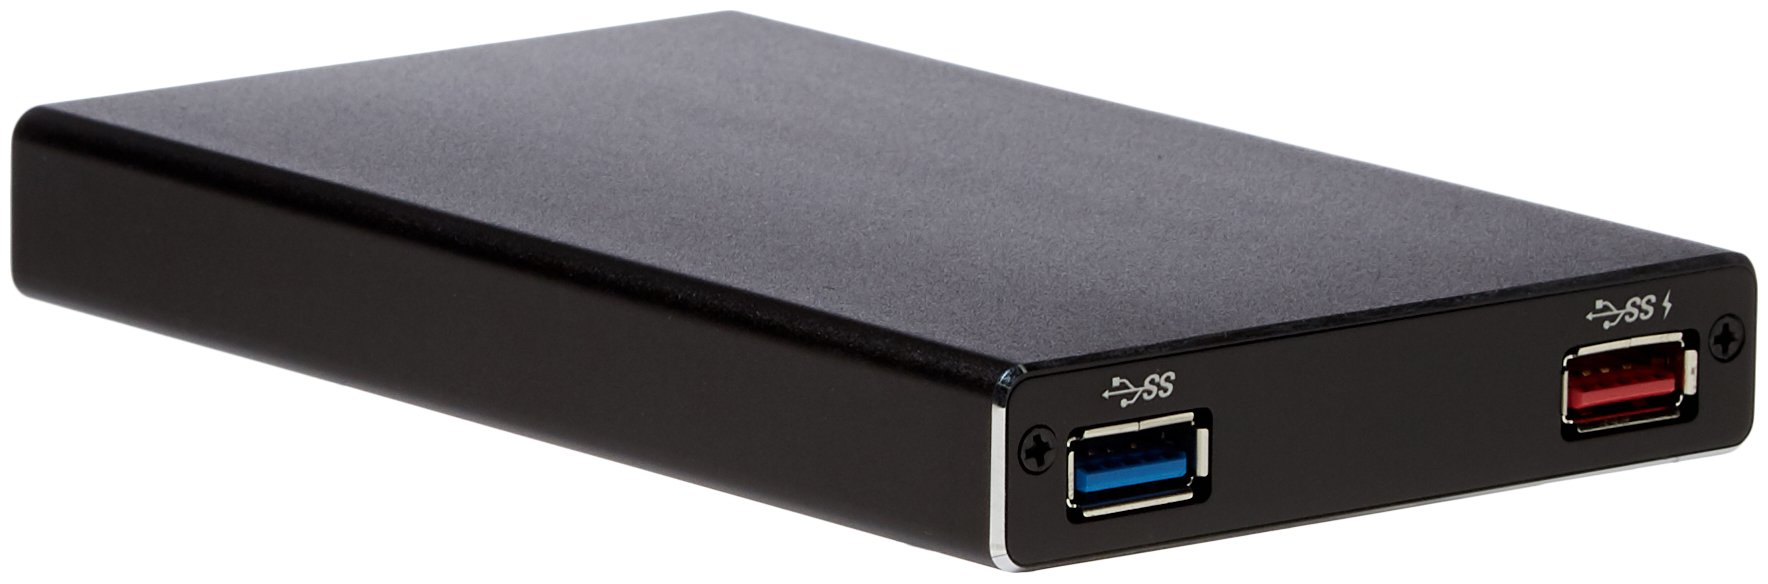 SilverStone Technology 2.5'' Hard Drive / SSD Enclosure with USB 3.1 Gen 1 Type-C Port, Power Delivery up to 60 Watts, and USB Type-A Hub TS15B